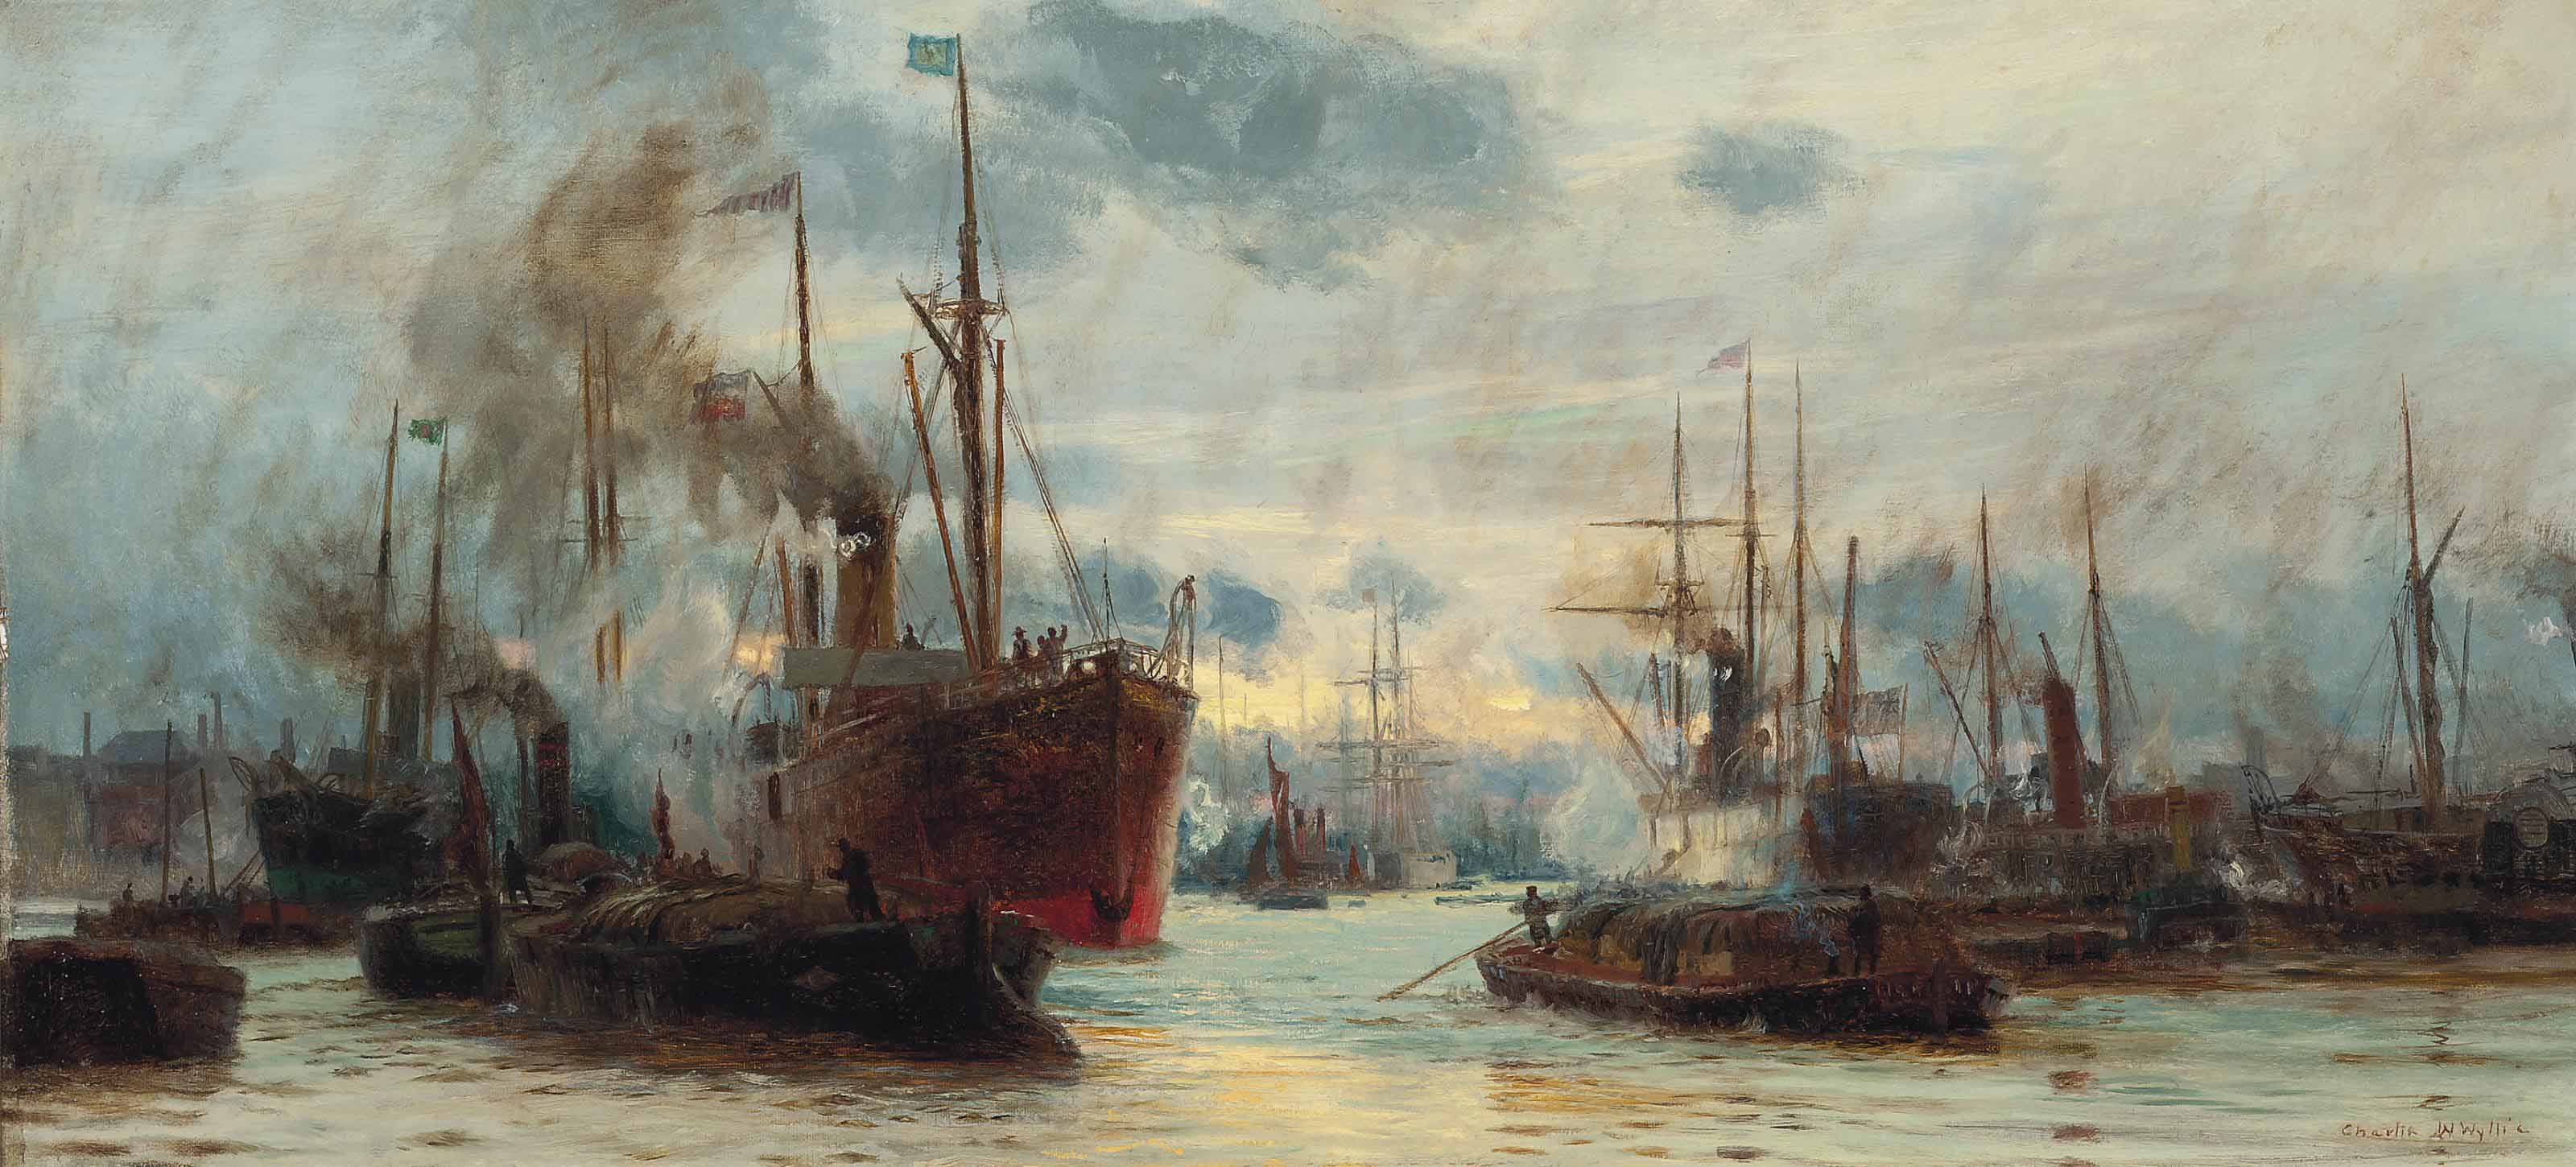 Congested waters on the Thames